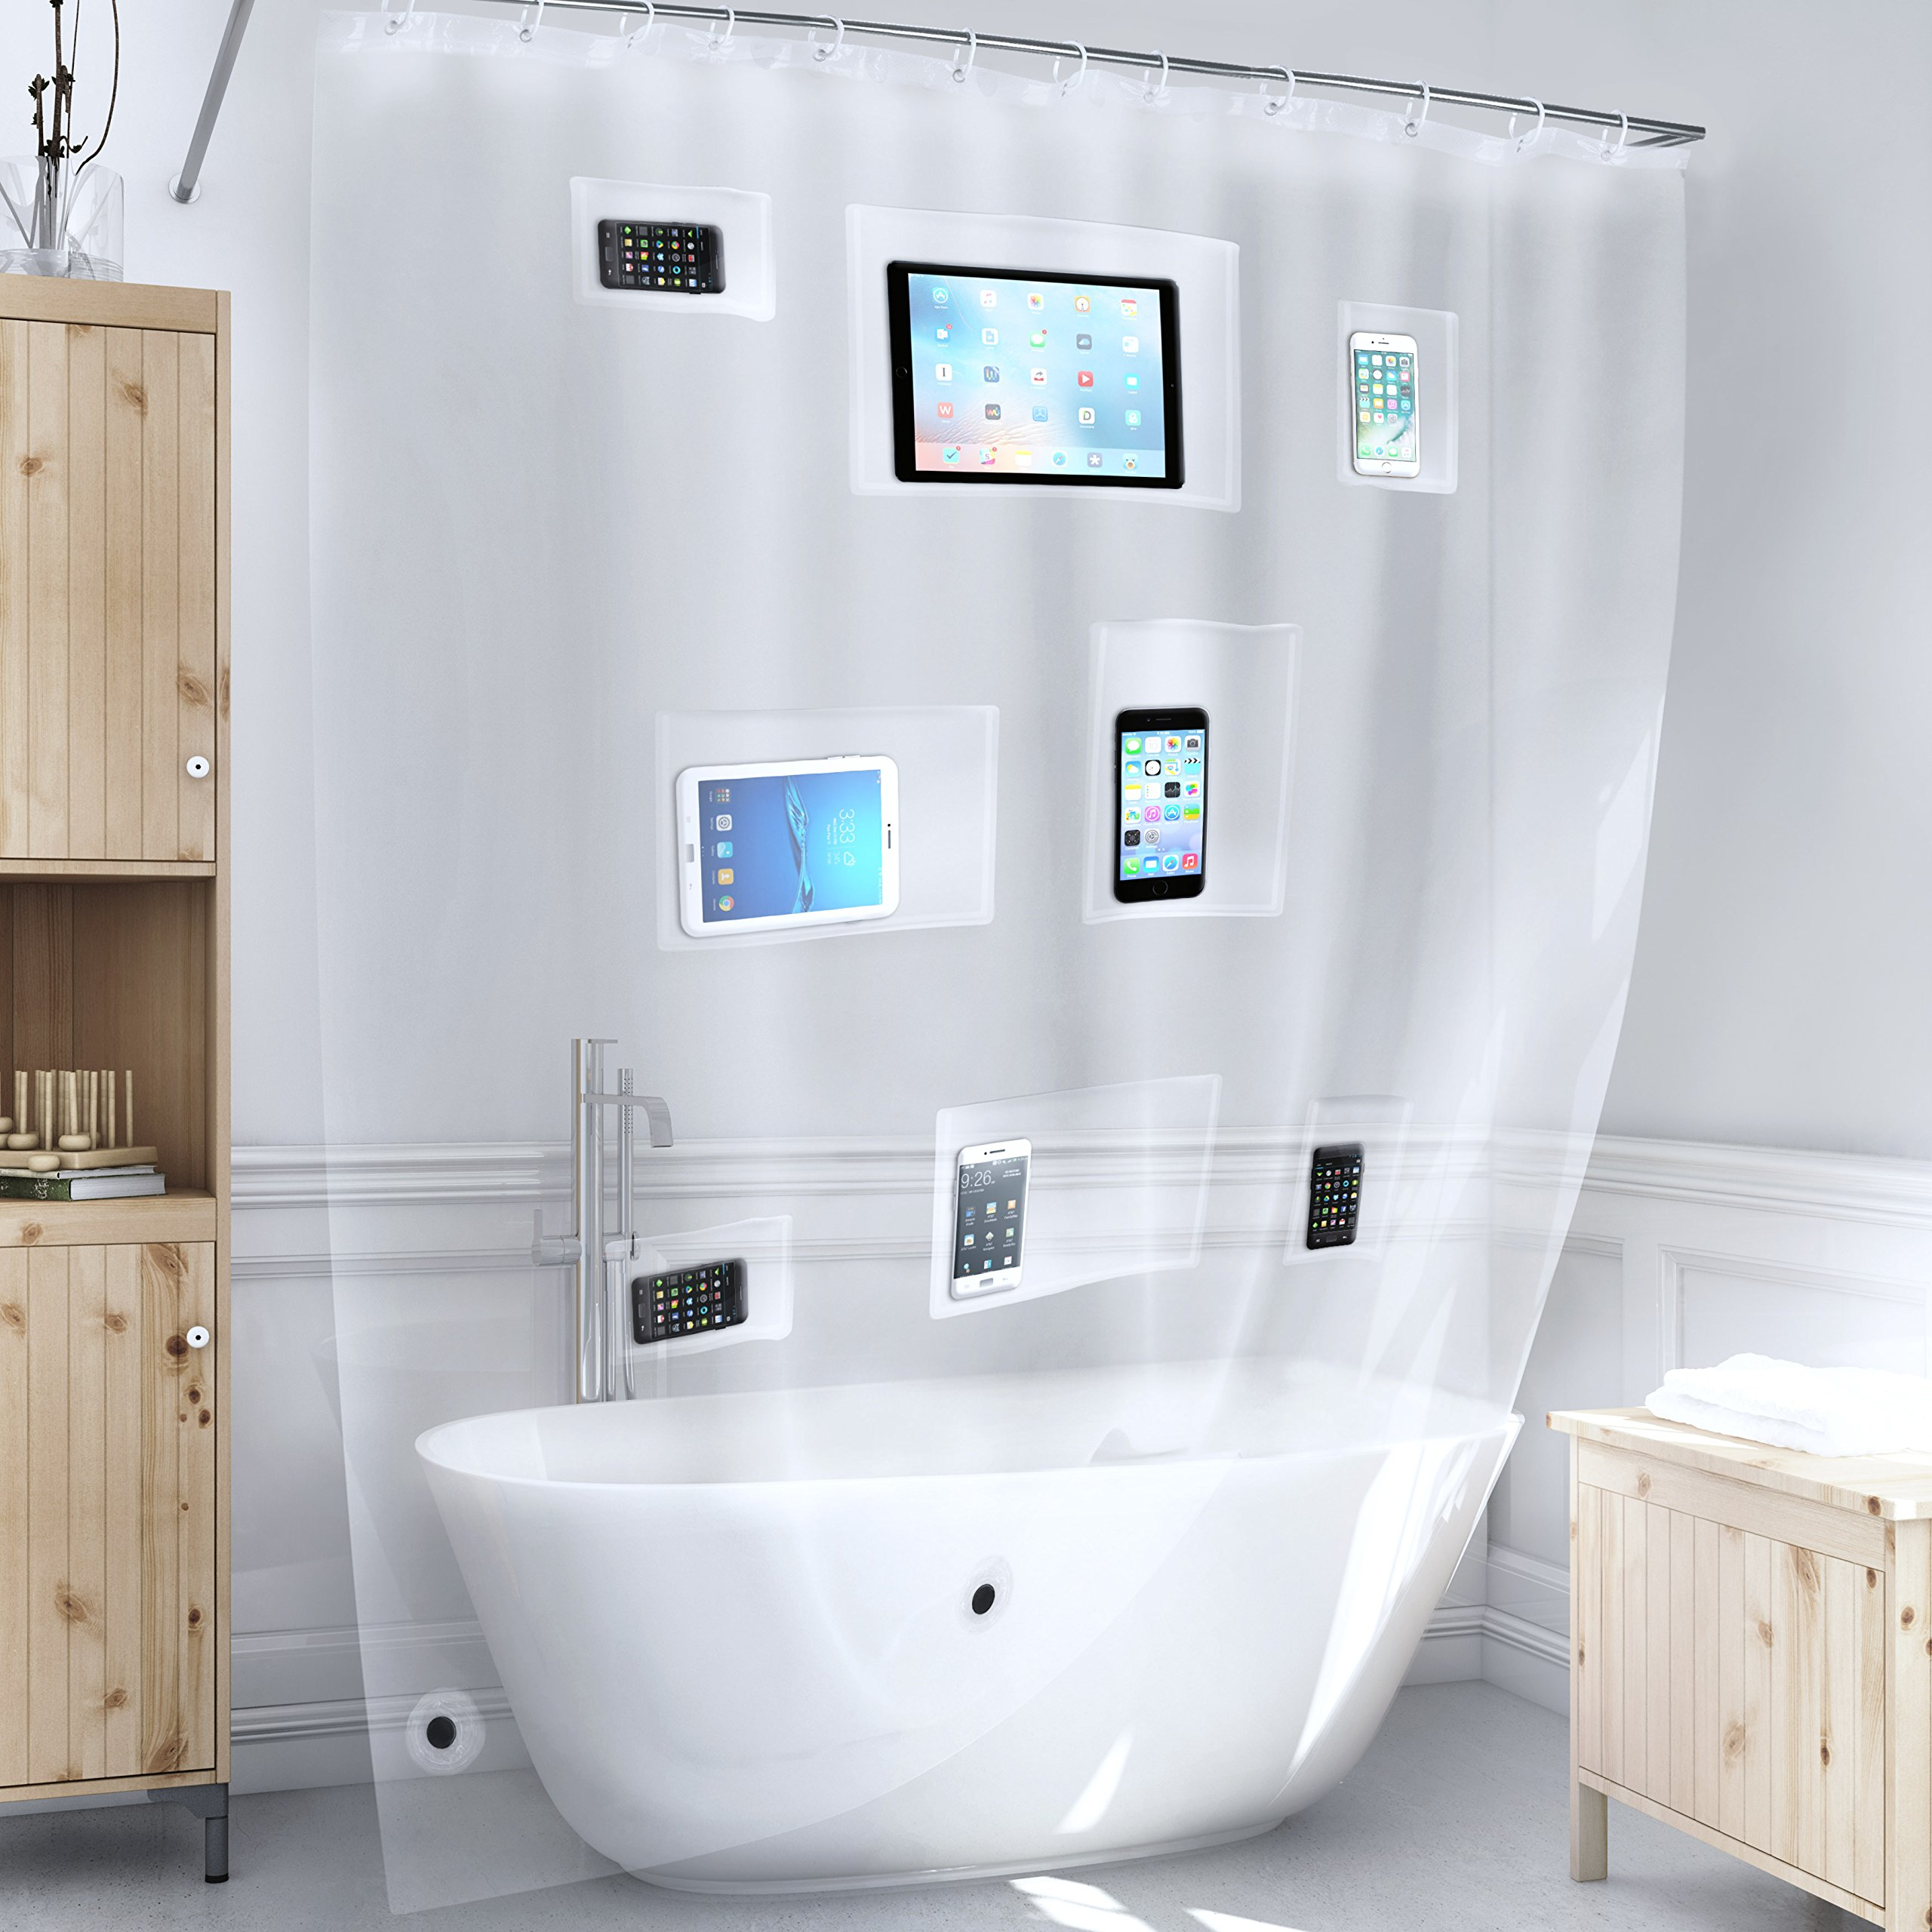 Better Than Bubbles Tech Friendly Clear Shower Curtain Liner with Pockets - For iPad, iPhone, Android, etc.